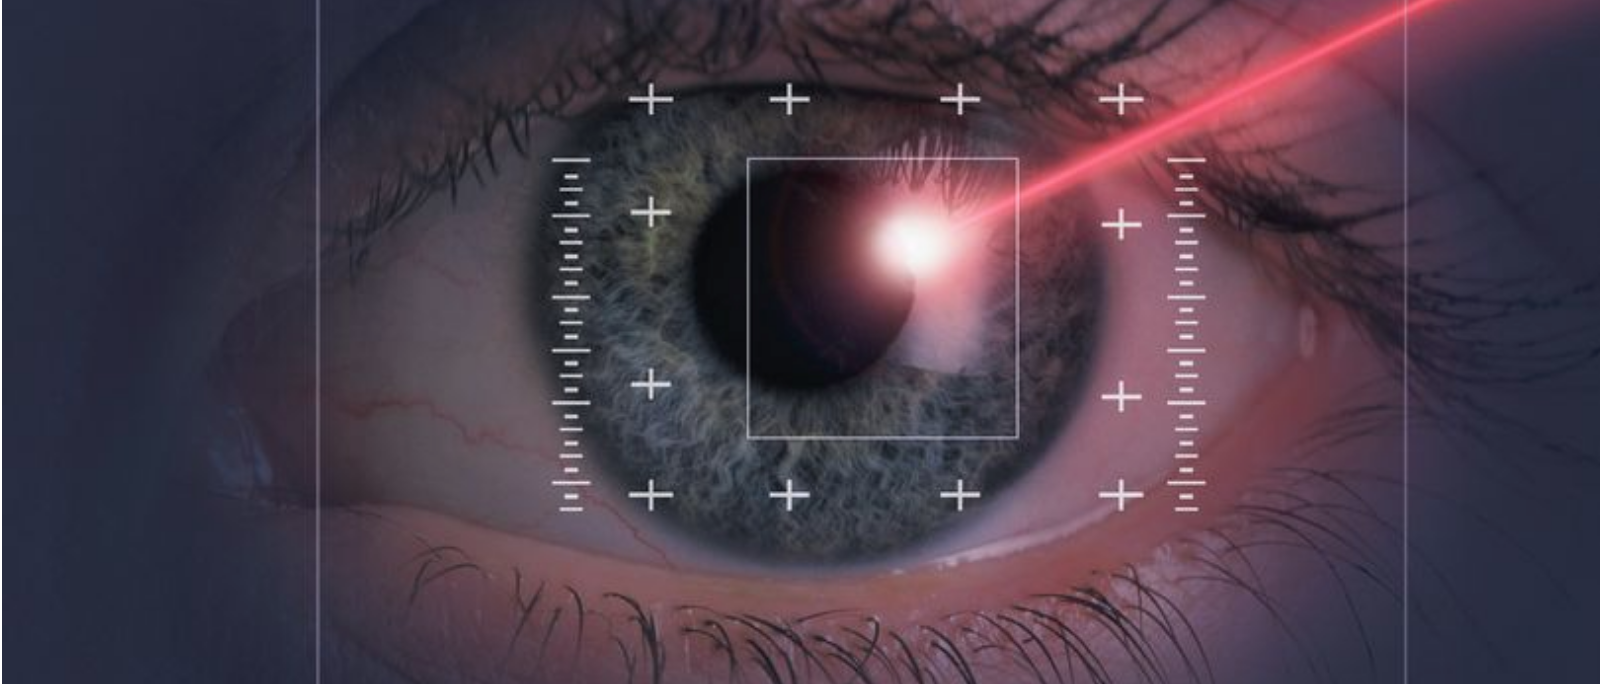 The Mirror ranks Laser Vision Scotland as one of the UK's best Laser Eye Clinics